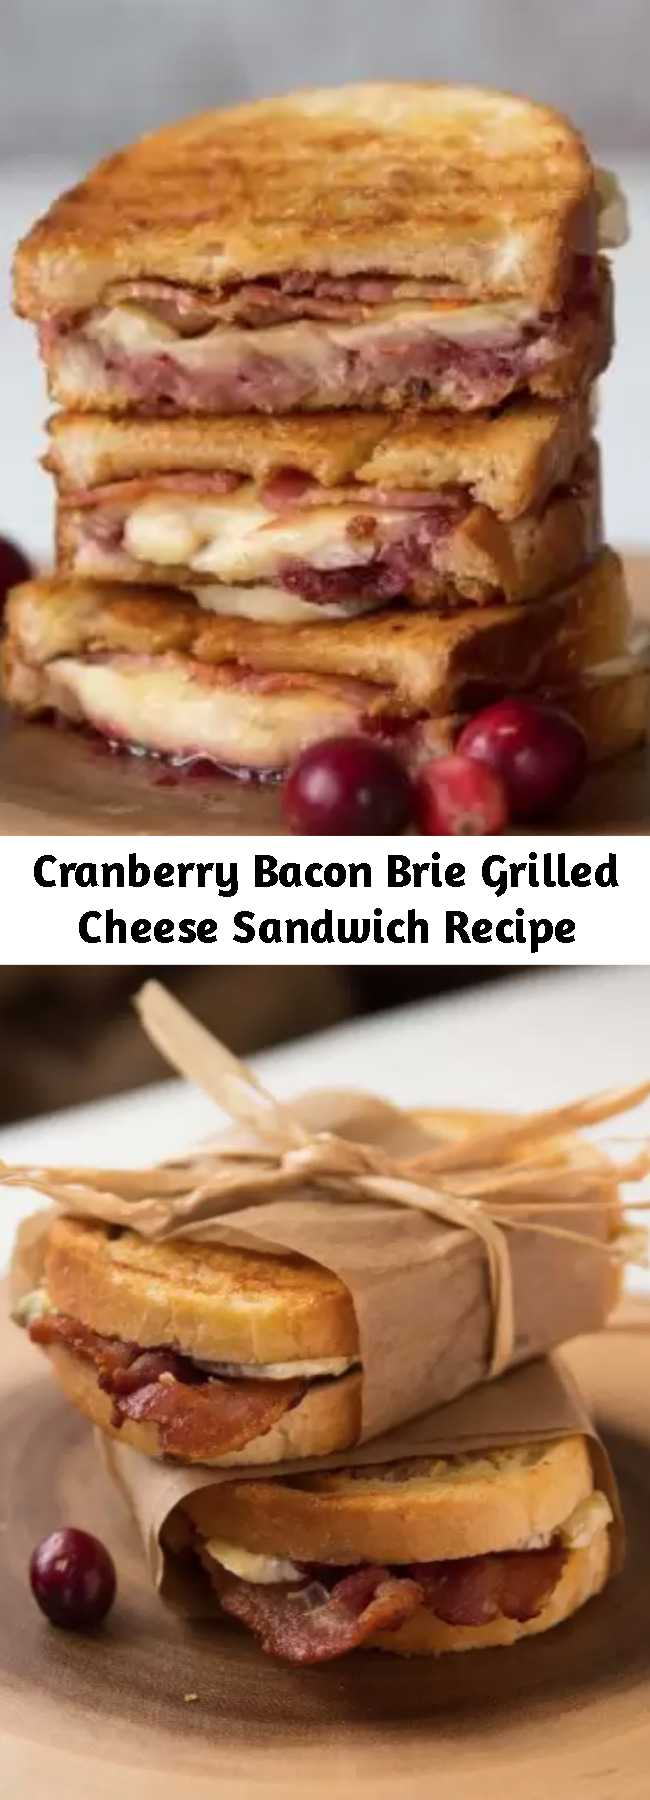 Cranberry Bacon Brie Grilled Cheese Sandwich Recipe - Cranberry Bacon Brie Grilled Cheese Sandwich - The perfect combination celebrating the beauty of salty and sweet. The only way you'll ever want to use up leftover cranberry sauce!  #leftovers #cranberry #brie #cheese #grilledcheese #bacon